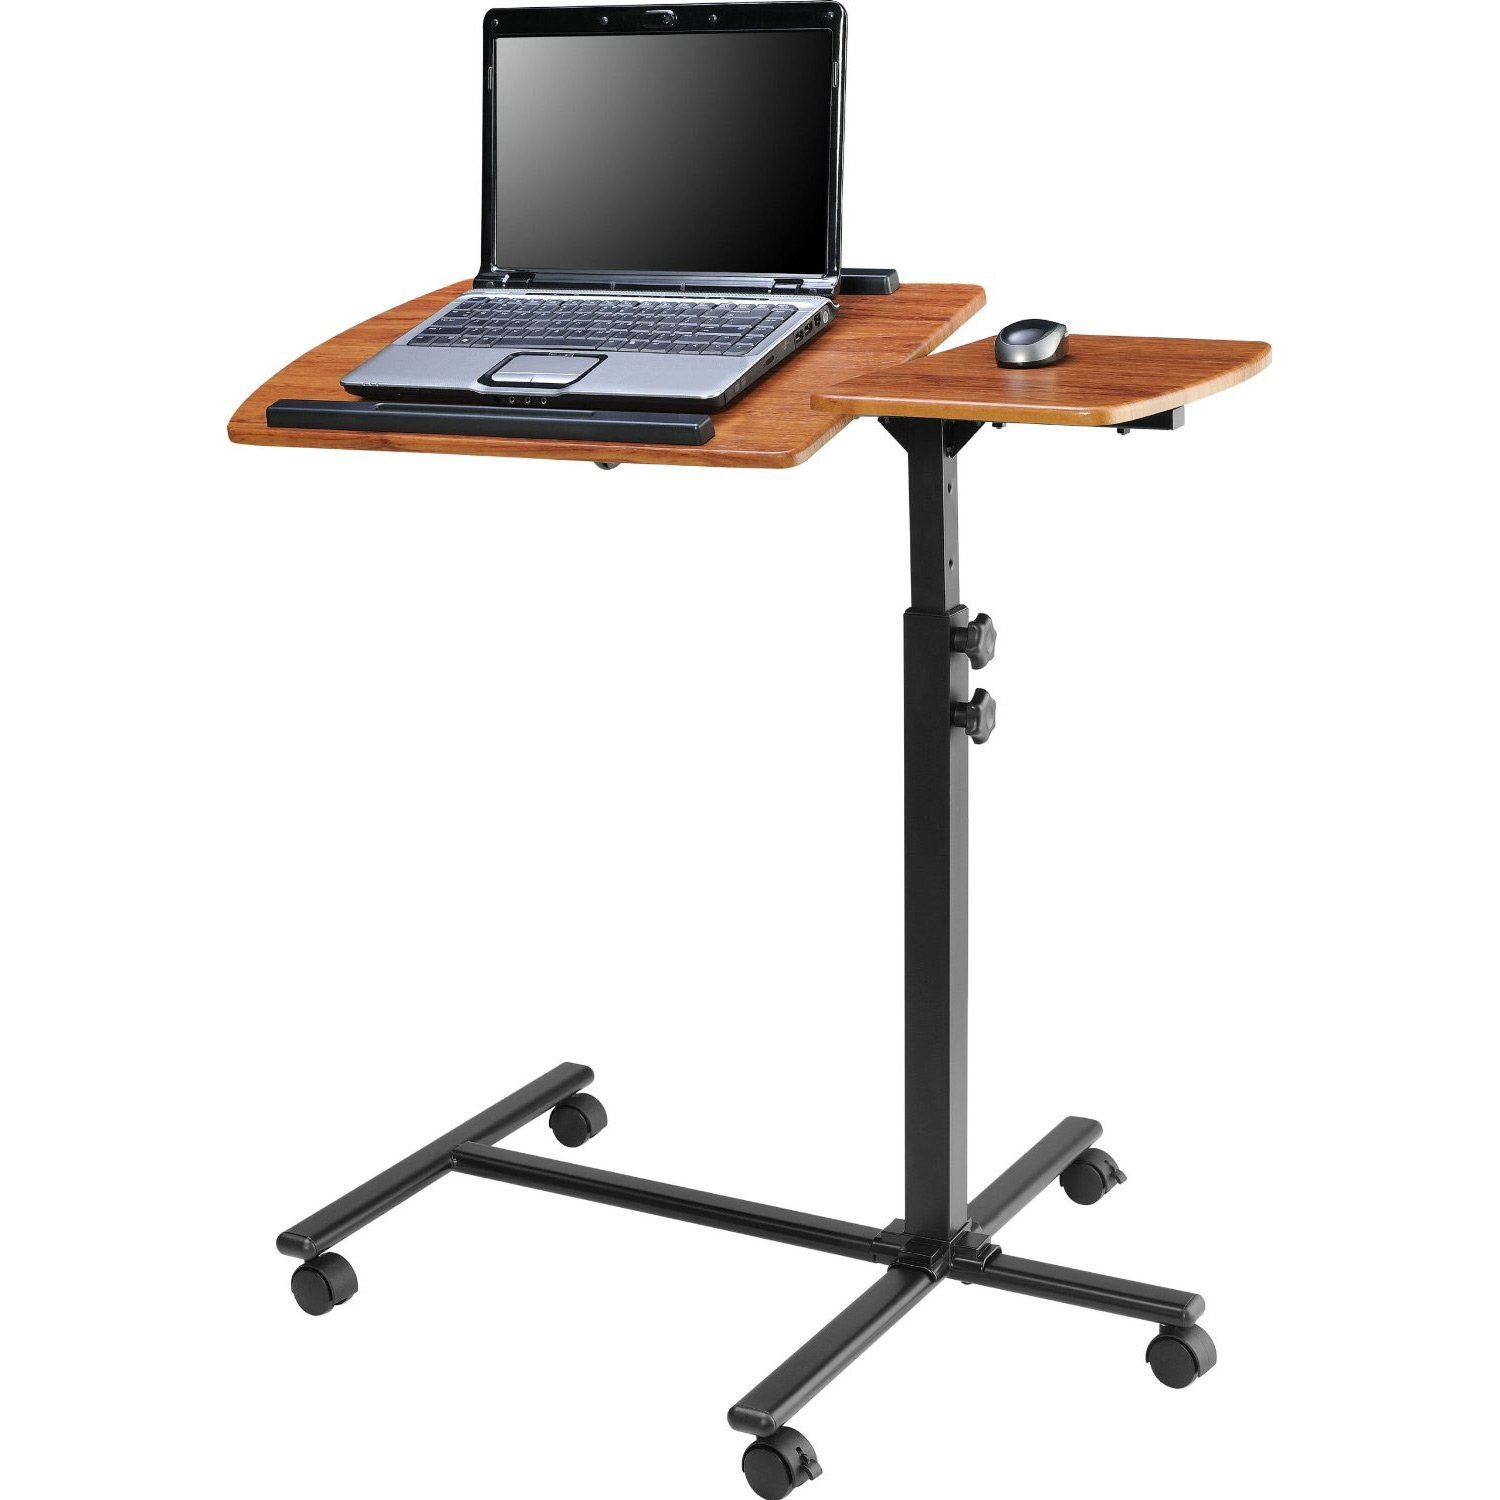 products laptop bonus carry igowego with table full case stand portable desk